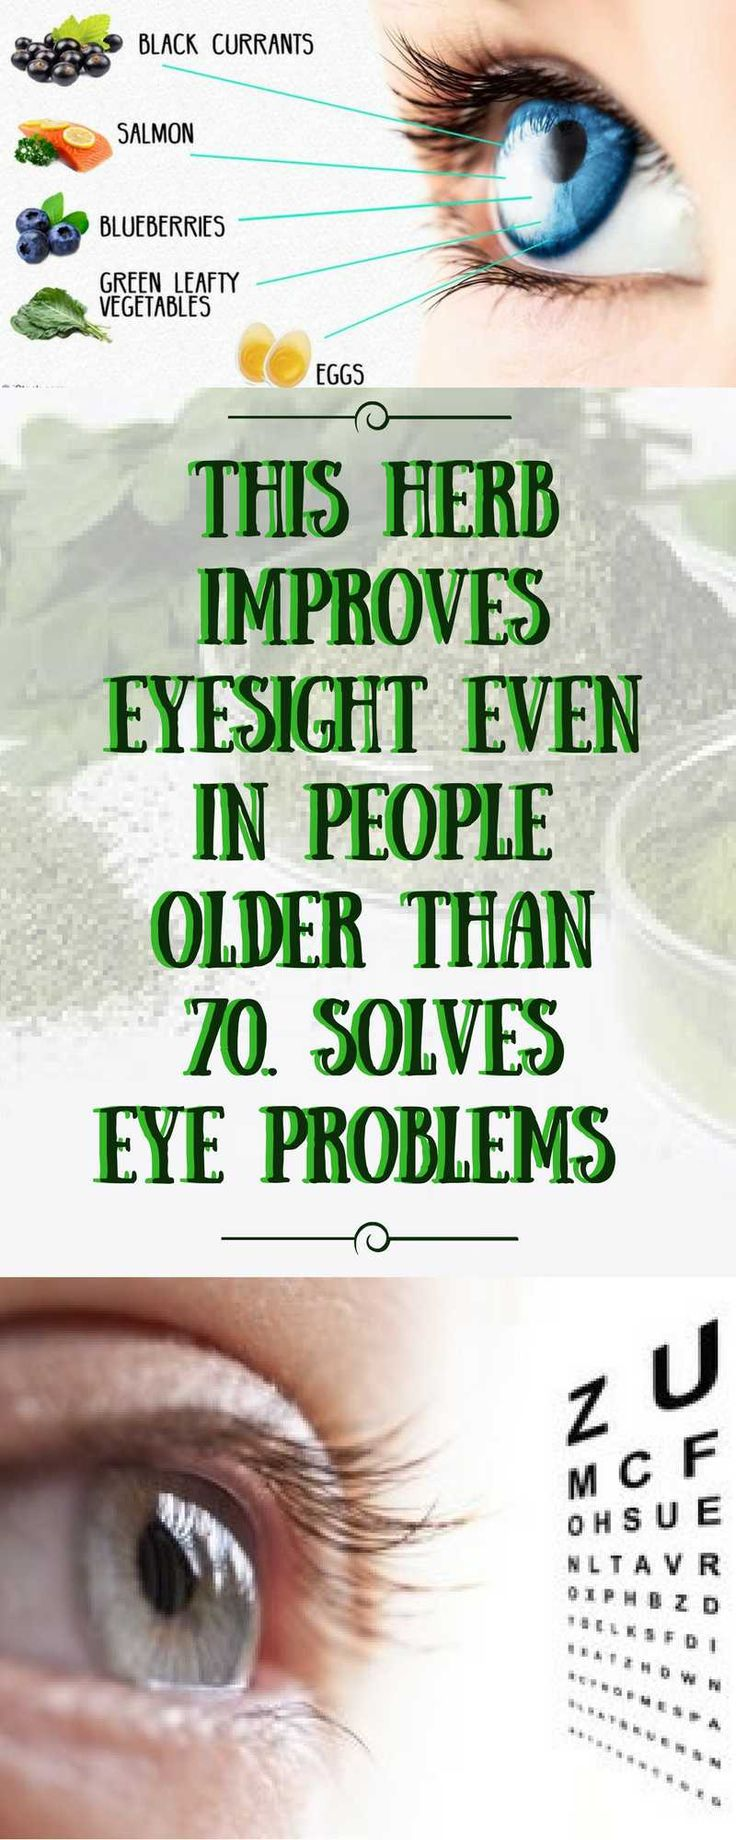 THIS HERB IMPROVES EYESIGHT EVEN IN PEOPLE OLDER THAN 70. SOLVES EYE PROBLEMS, VISION AND EYE PROBLEMS, VISION AND EYE PRESSURE!##